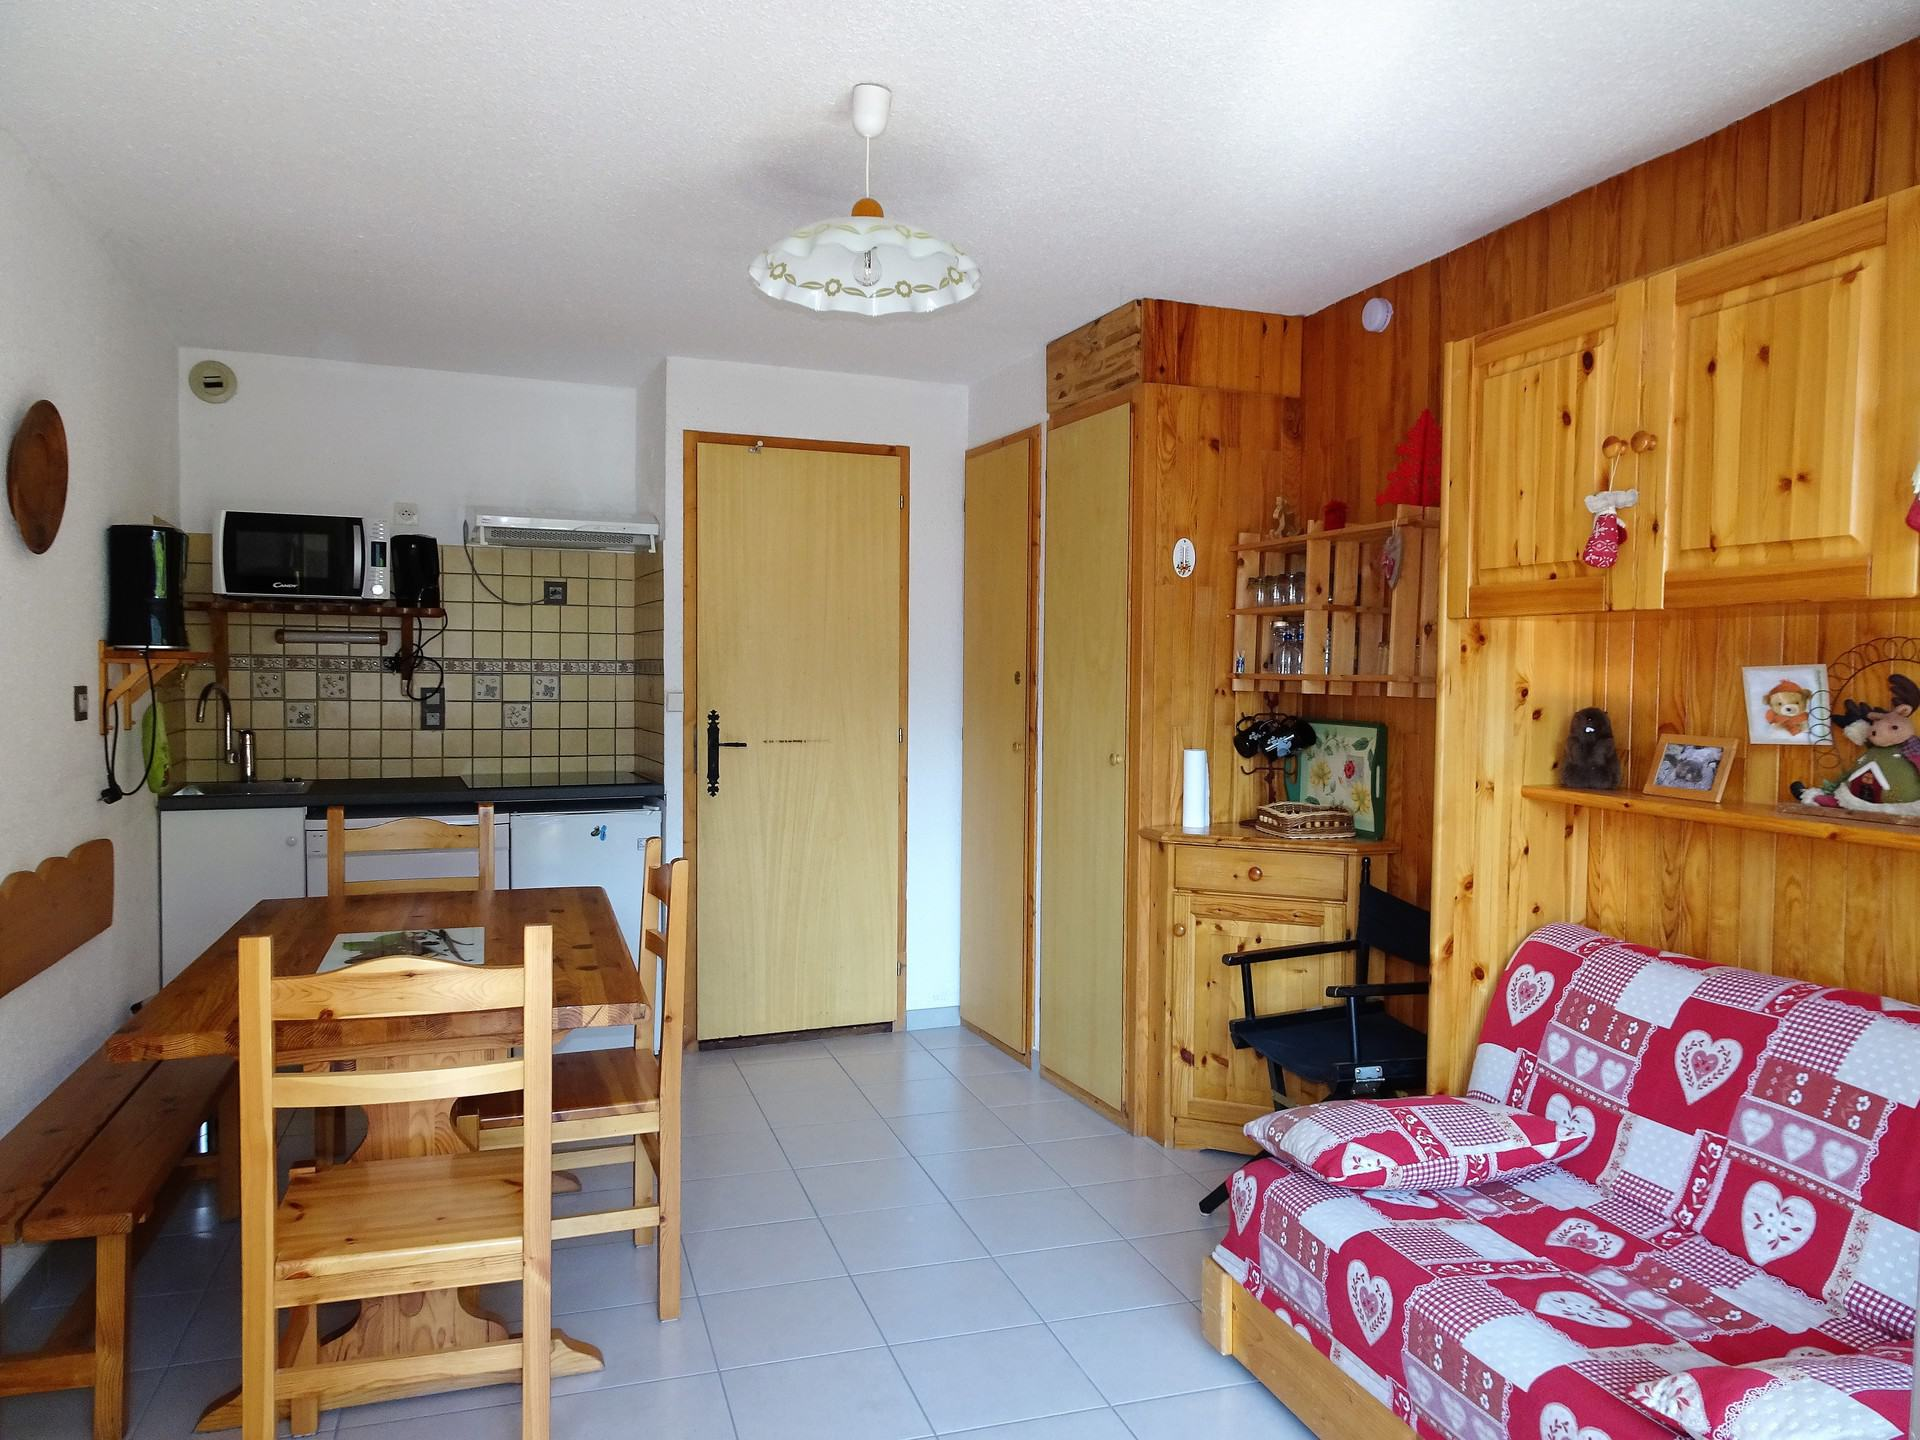 Rental reference : CENTRE9 to Champagny en Vanoise